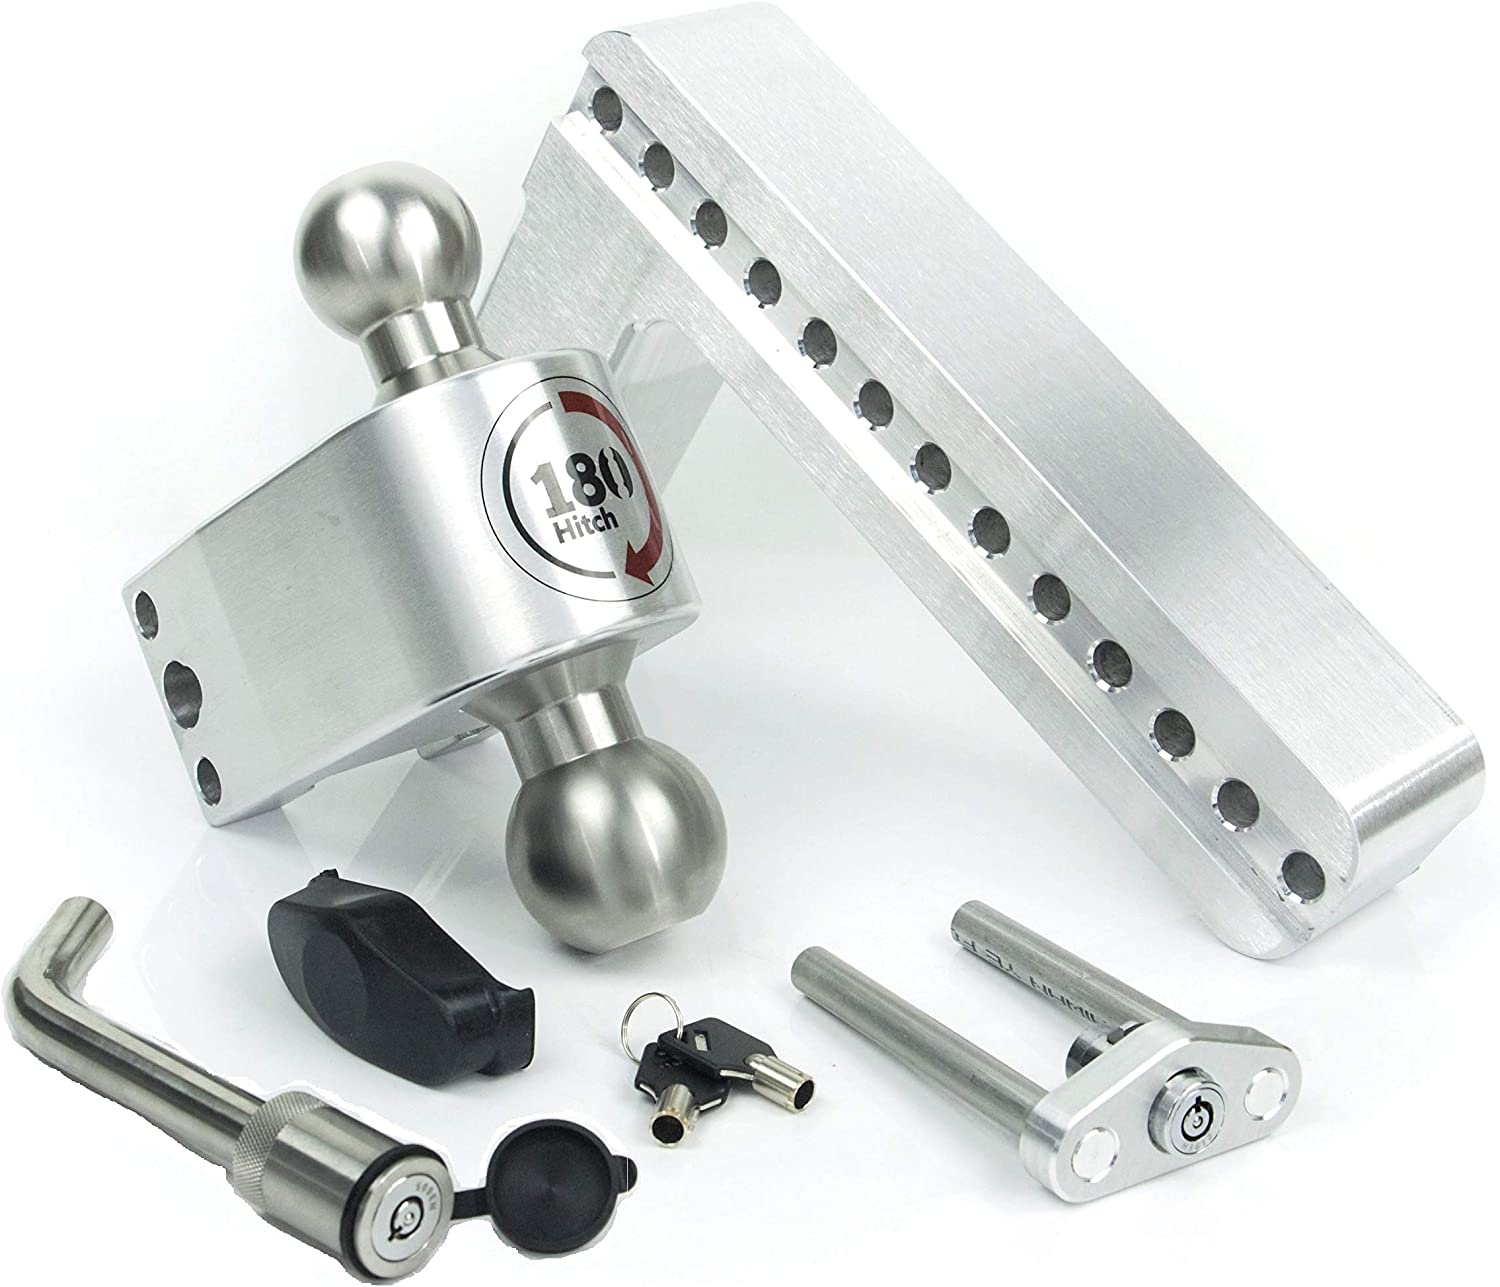 Keyed Alike Key Lock Hitch Pin 8 Drop 180 Hitch w// 2.5 Shank//Shaft Adjustable Aluminum Trailer Hitch /& Ball Mount 2 /& 2-5//16 Stainless Steel Combo Ball Weigh Safe LTB8-2.5-KA